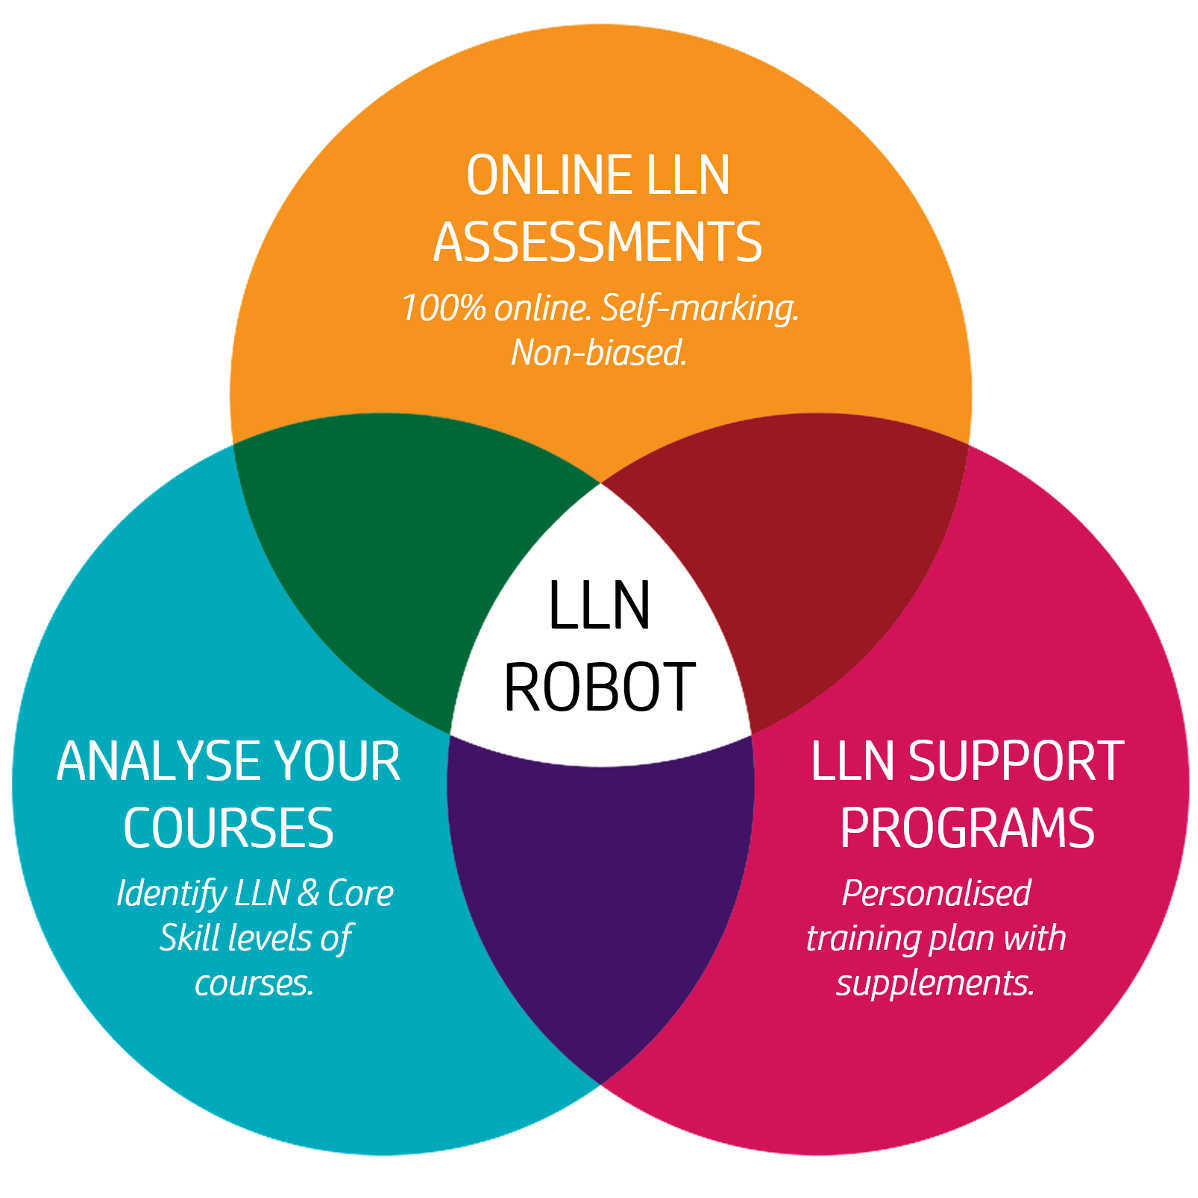 Lln Robot A Complete Lln Solution For Your Rto At The Learning